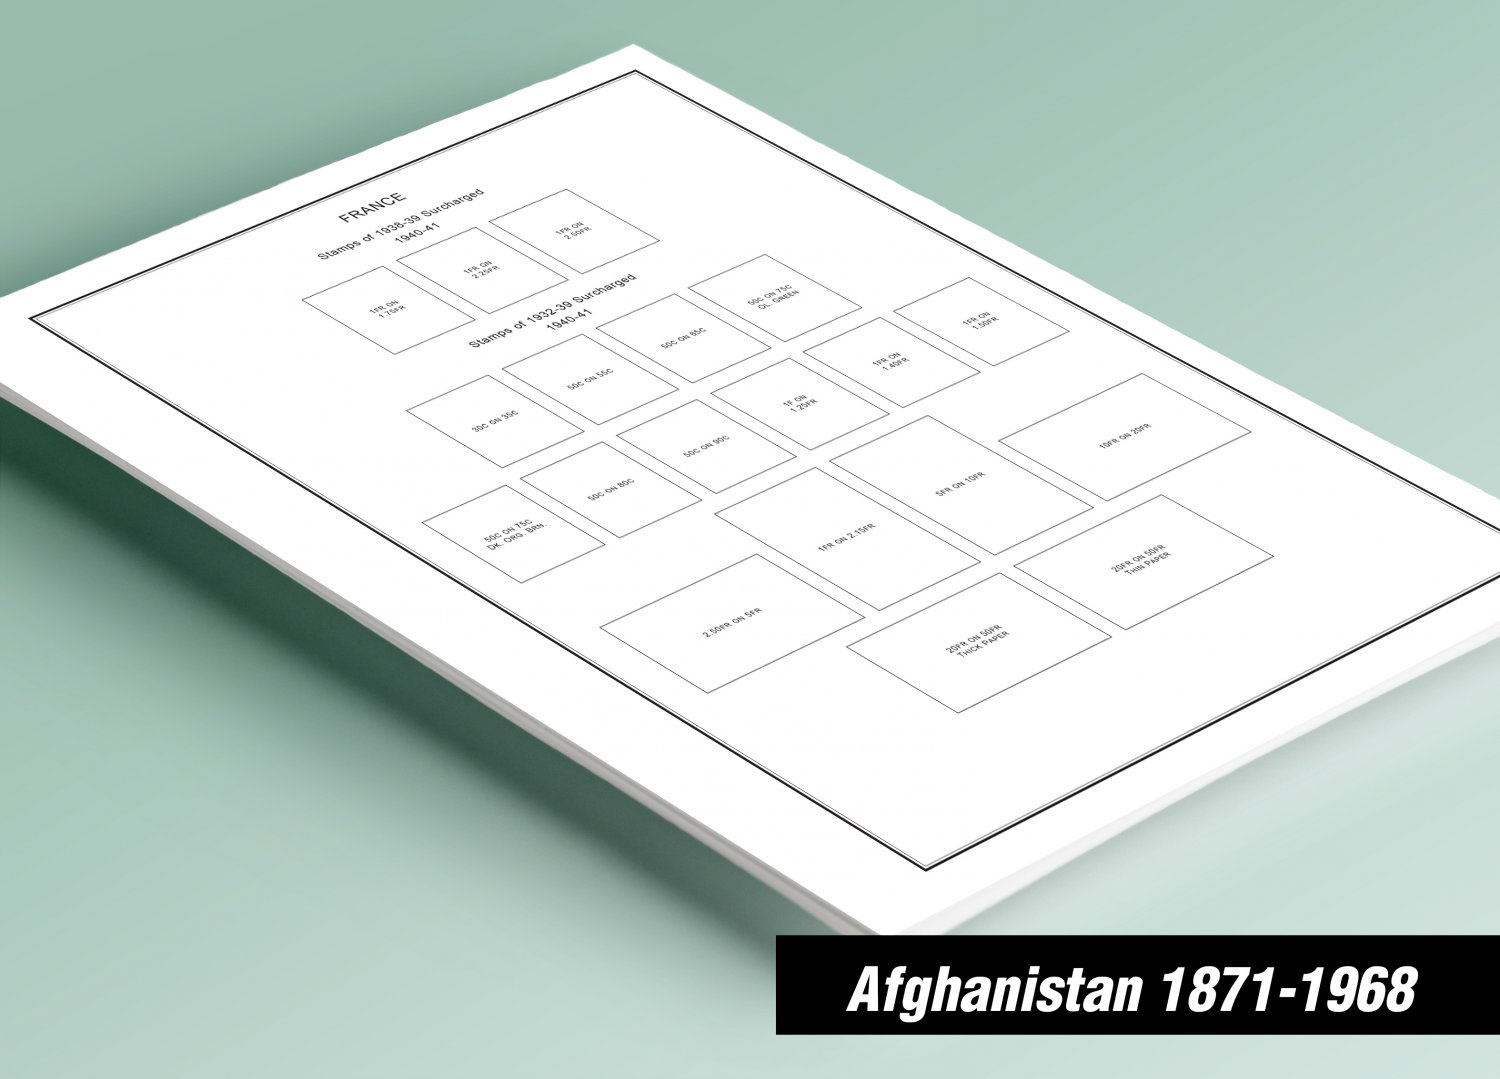 PRINTED AFGHANISTAN [CLASS.] 1871-1968 STAMP ALBUM PAGES (30 pages)